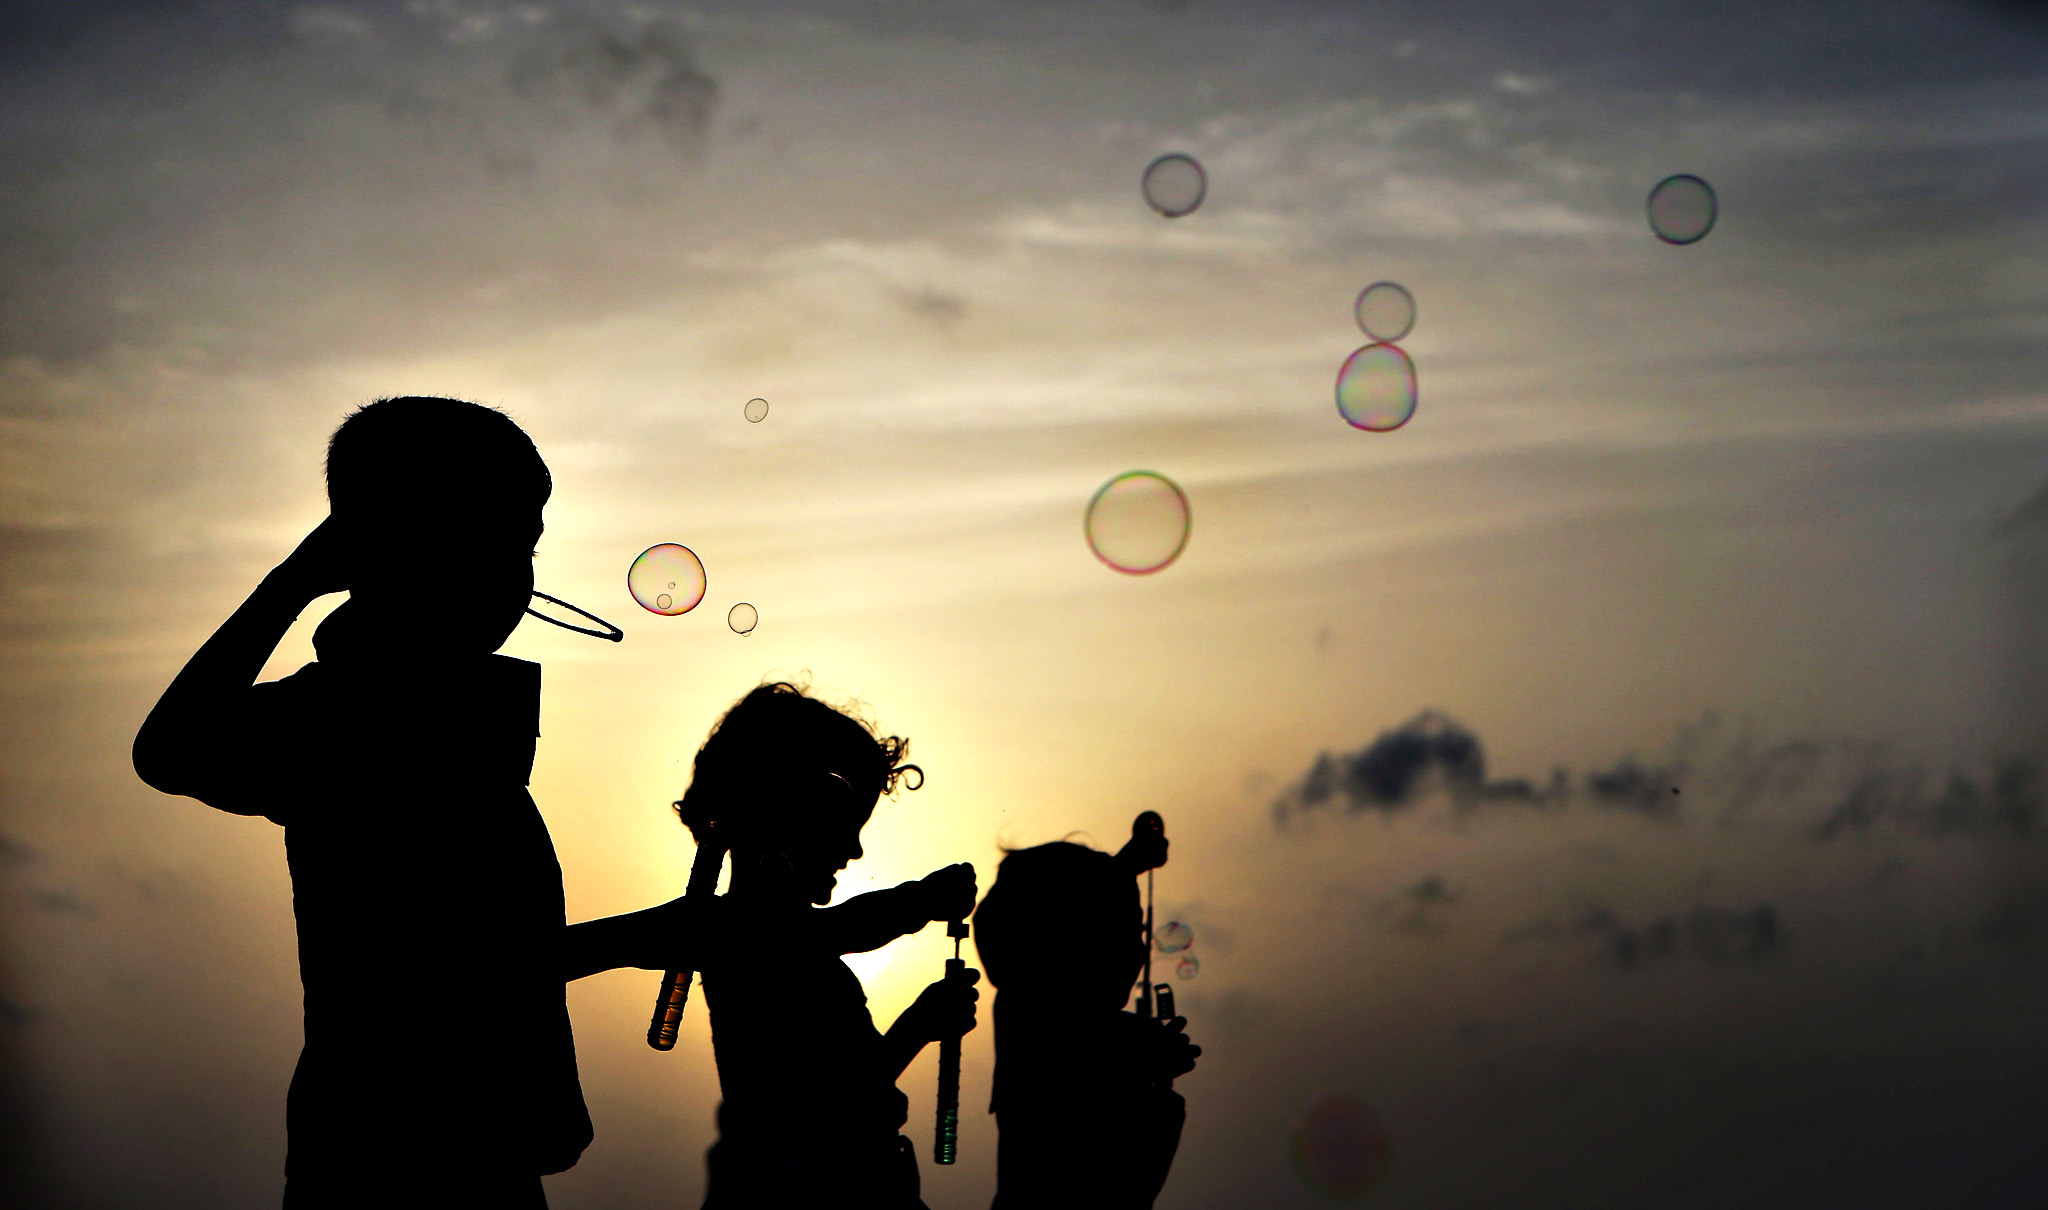 Sri Lankan children playing with soap bubbles are silhouetted against the setting Sun in Colombo, Sri Lanka, Tuesday, June 24, 2014.